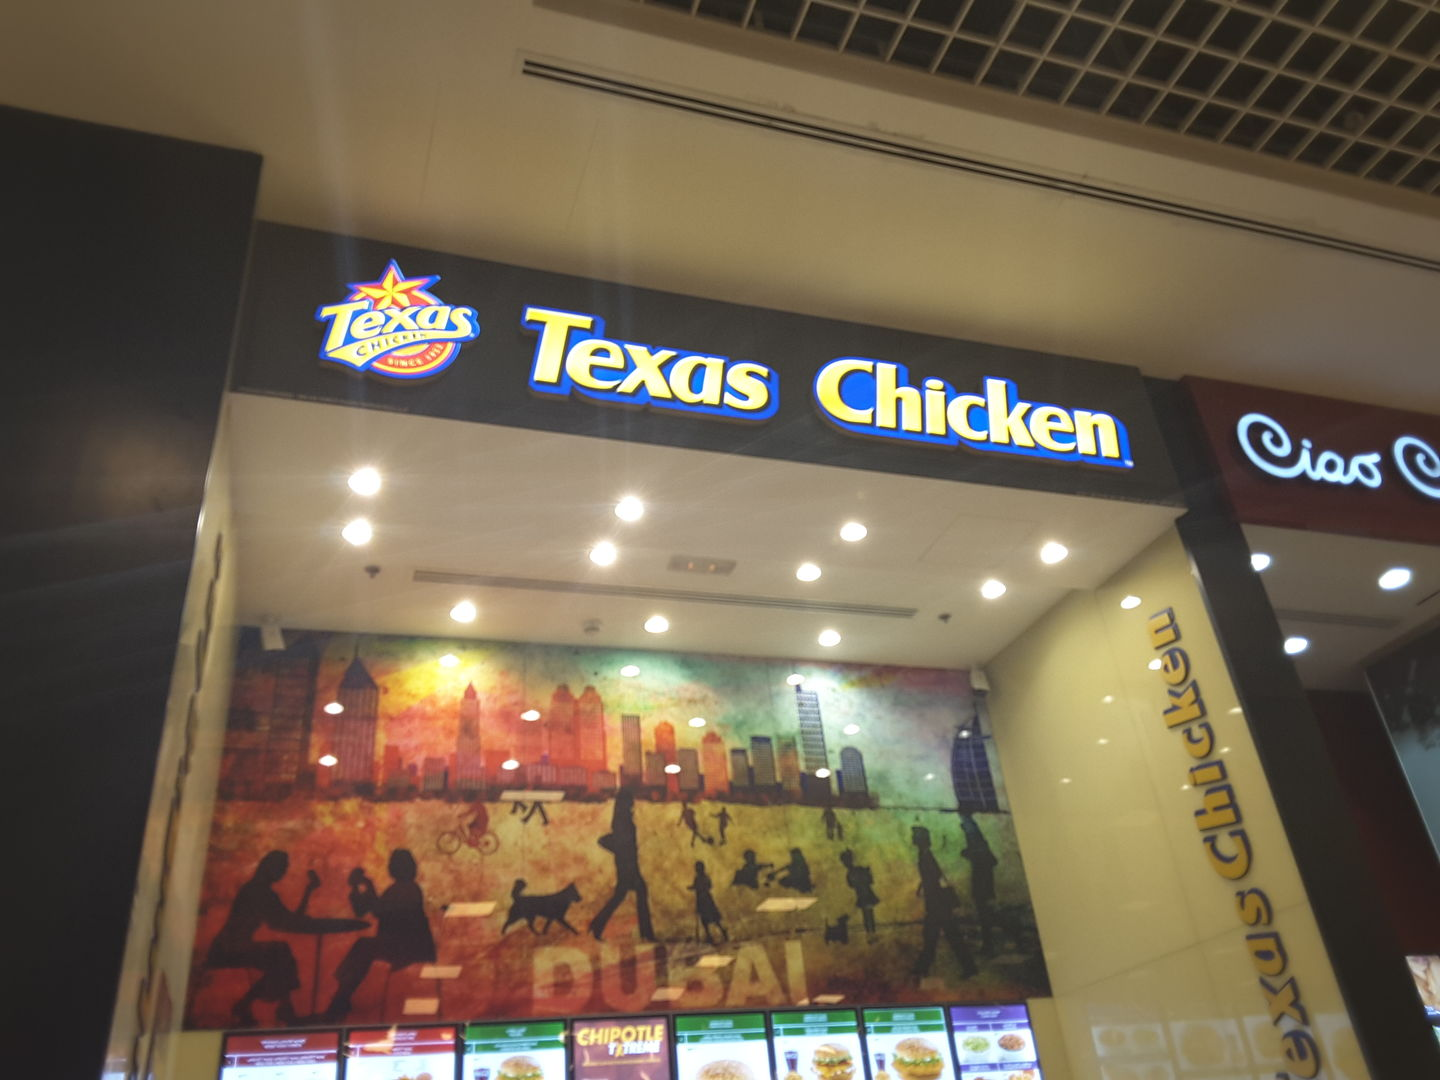 HiDubai-business-texas-chicken-food-beverage-restaurants-bars-international-city-warsan-1-dubai-2